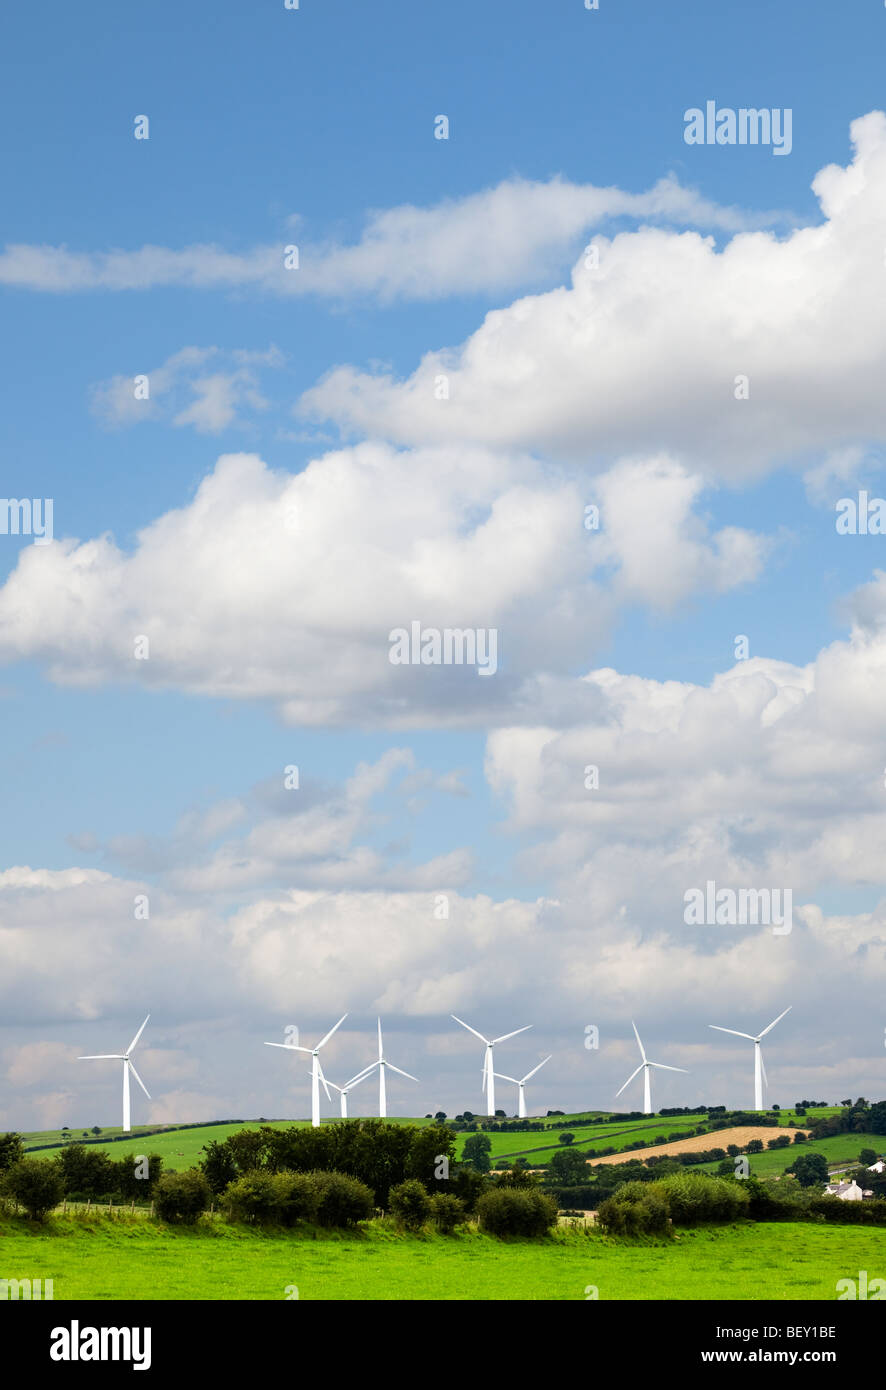 Wind farm at Bothel in Cumbria, Lake District, England, UK - Stock Image